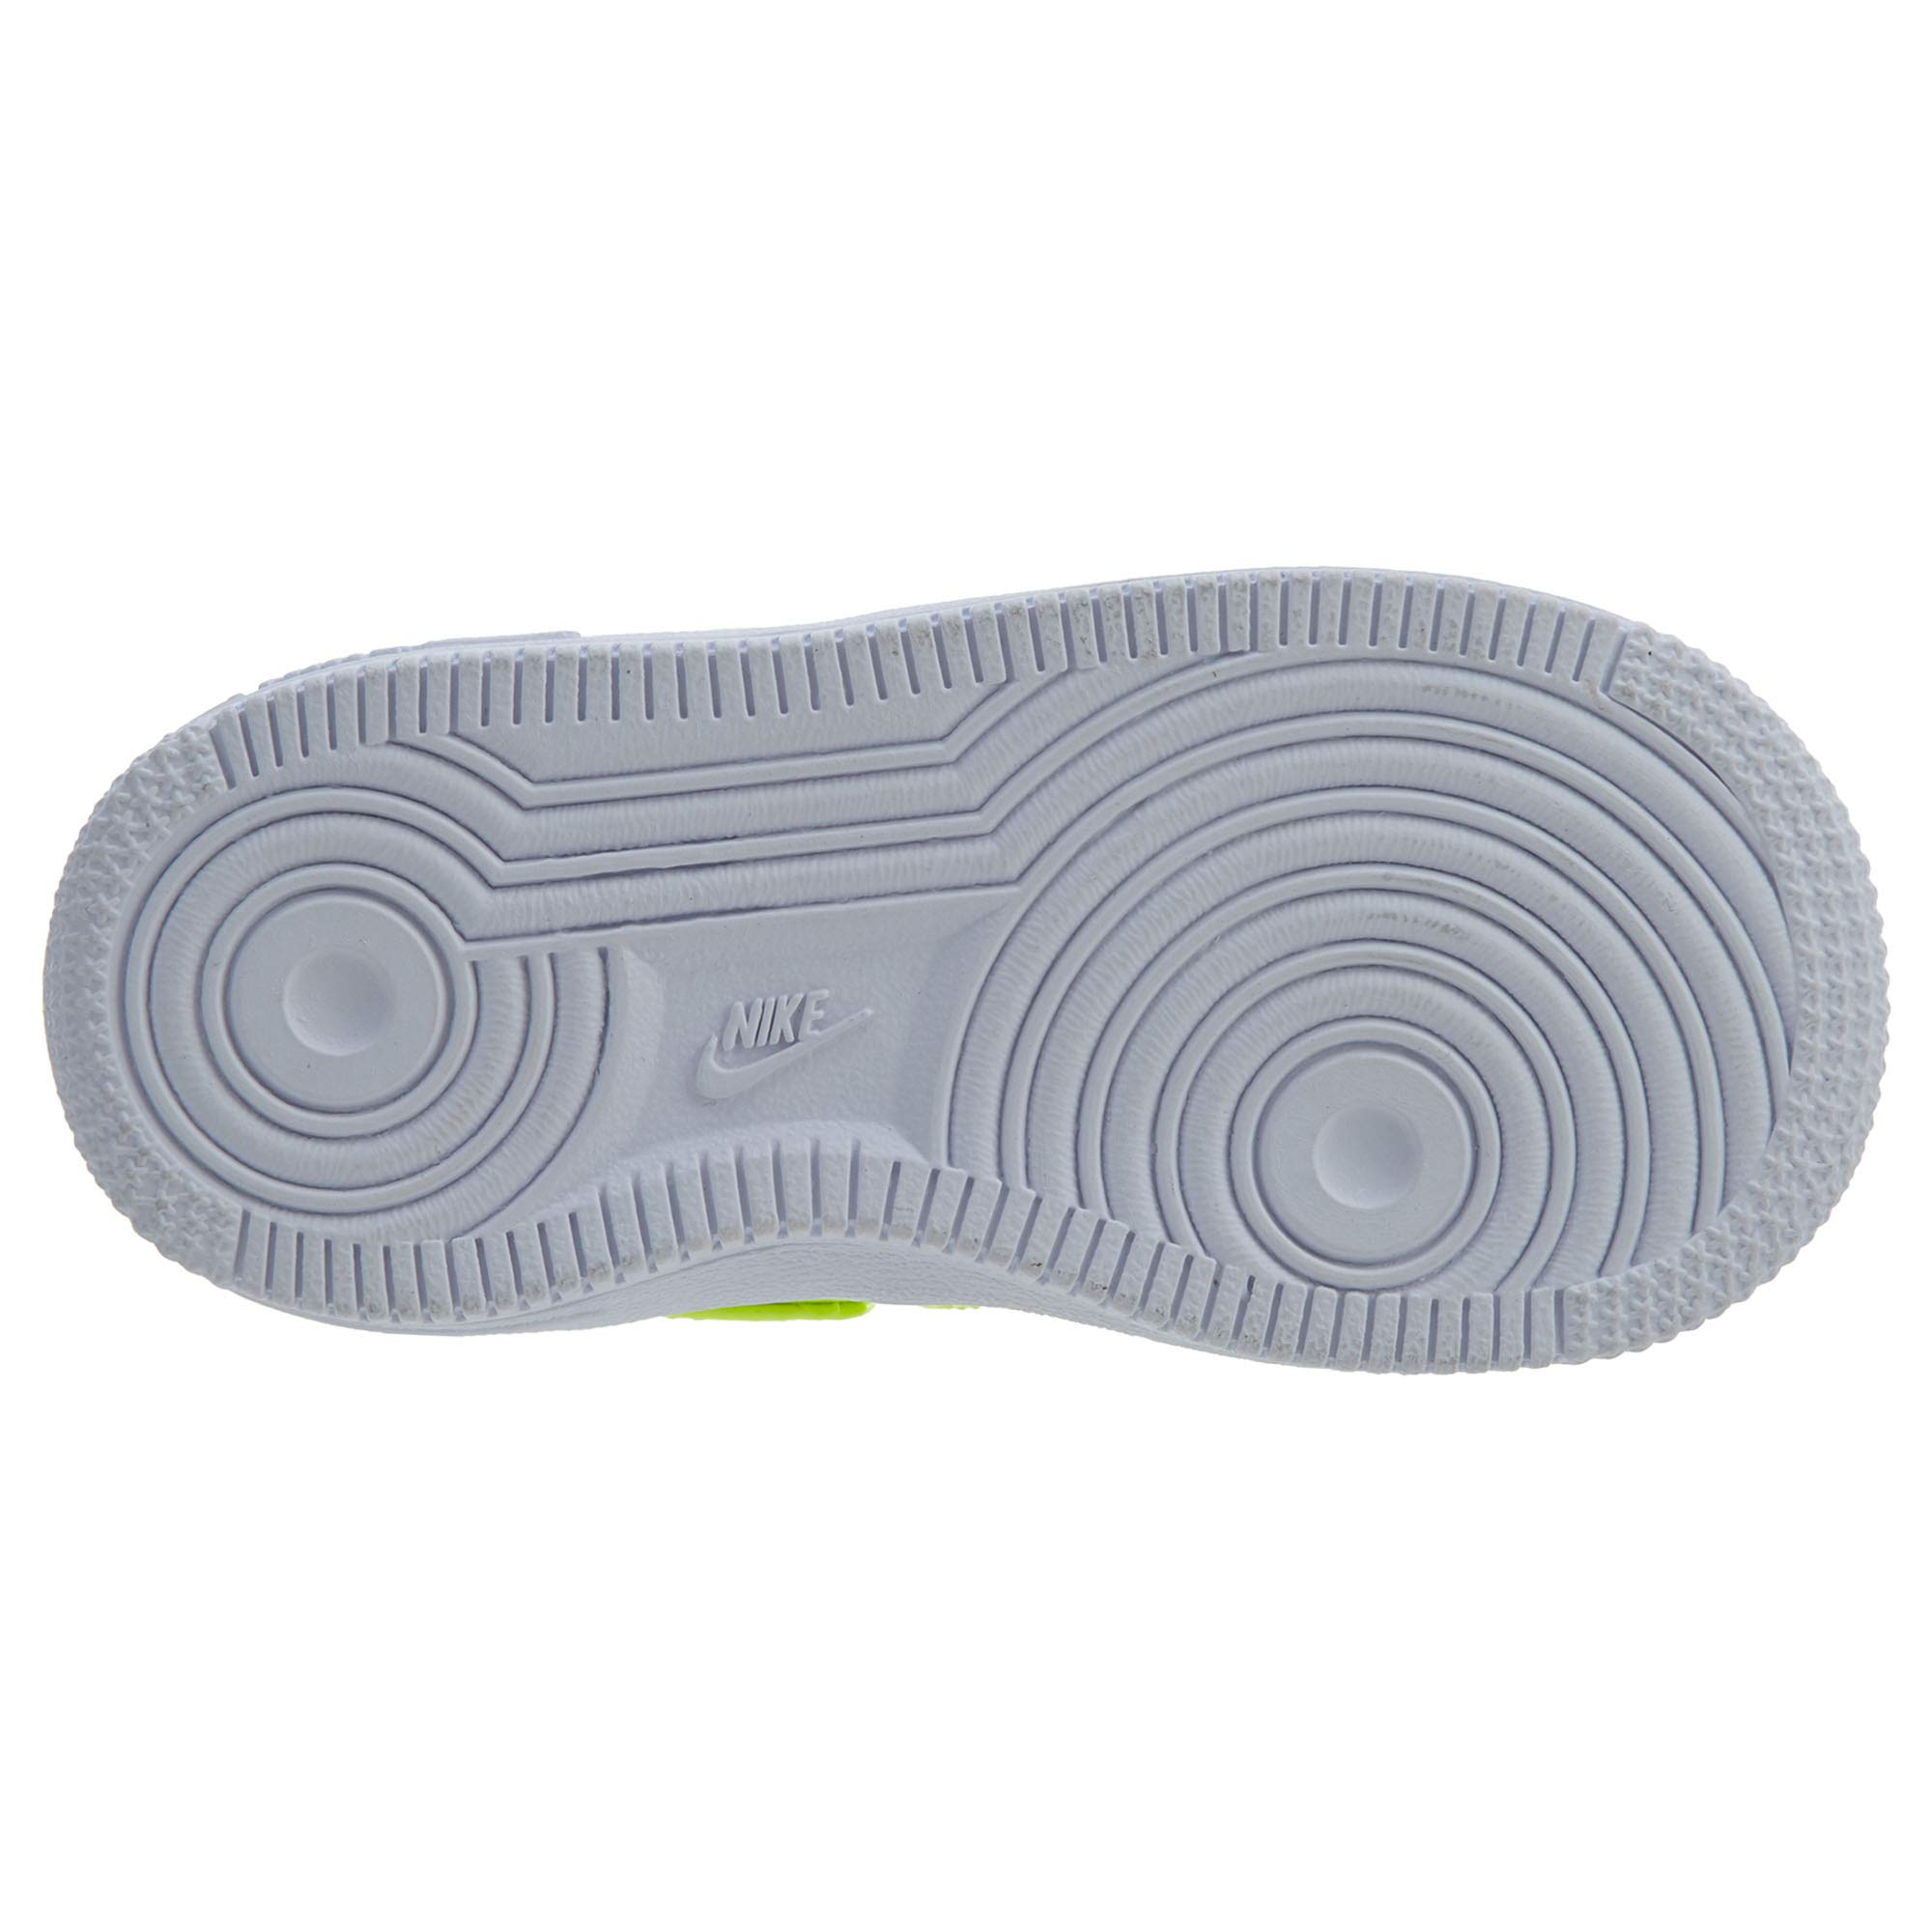 Nike Force 1 Lv8 Uv Toddlers Style: AO2288-700 Size: 6 by Nike (Image #7)